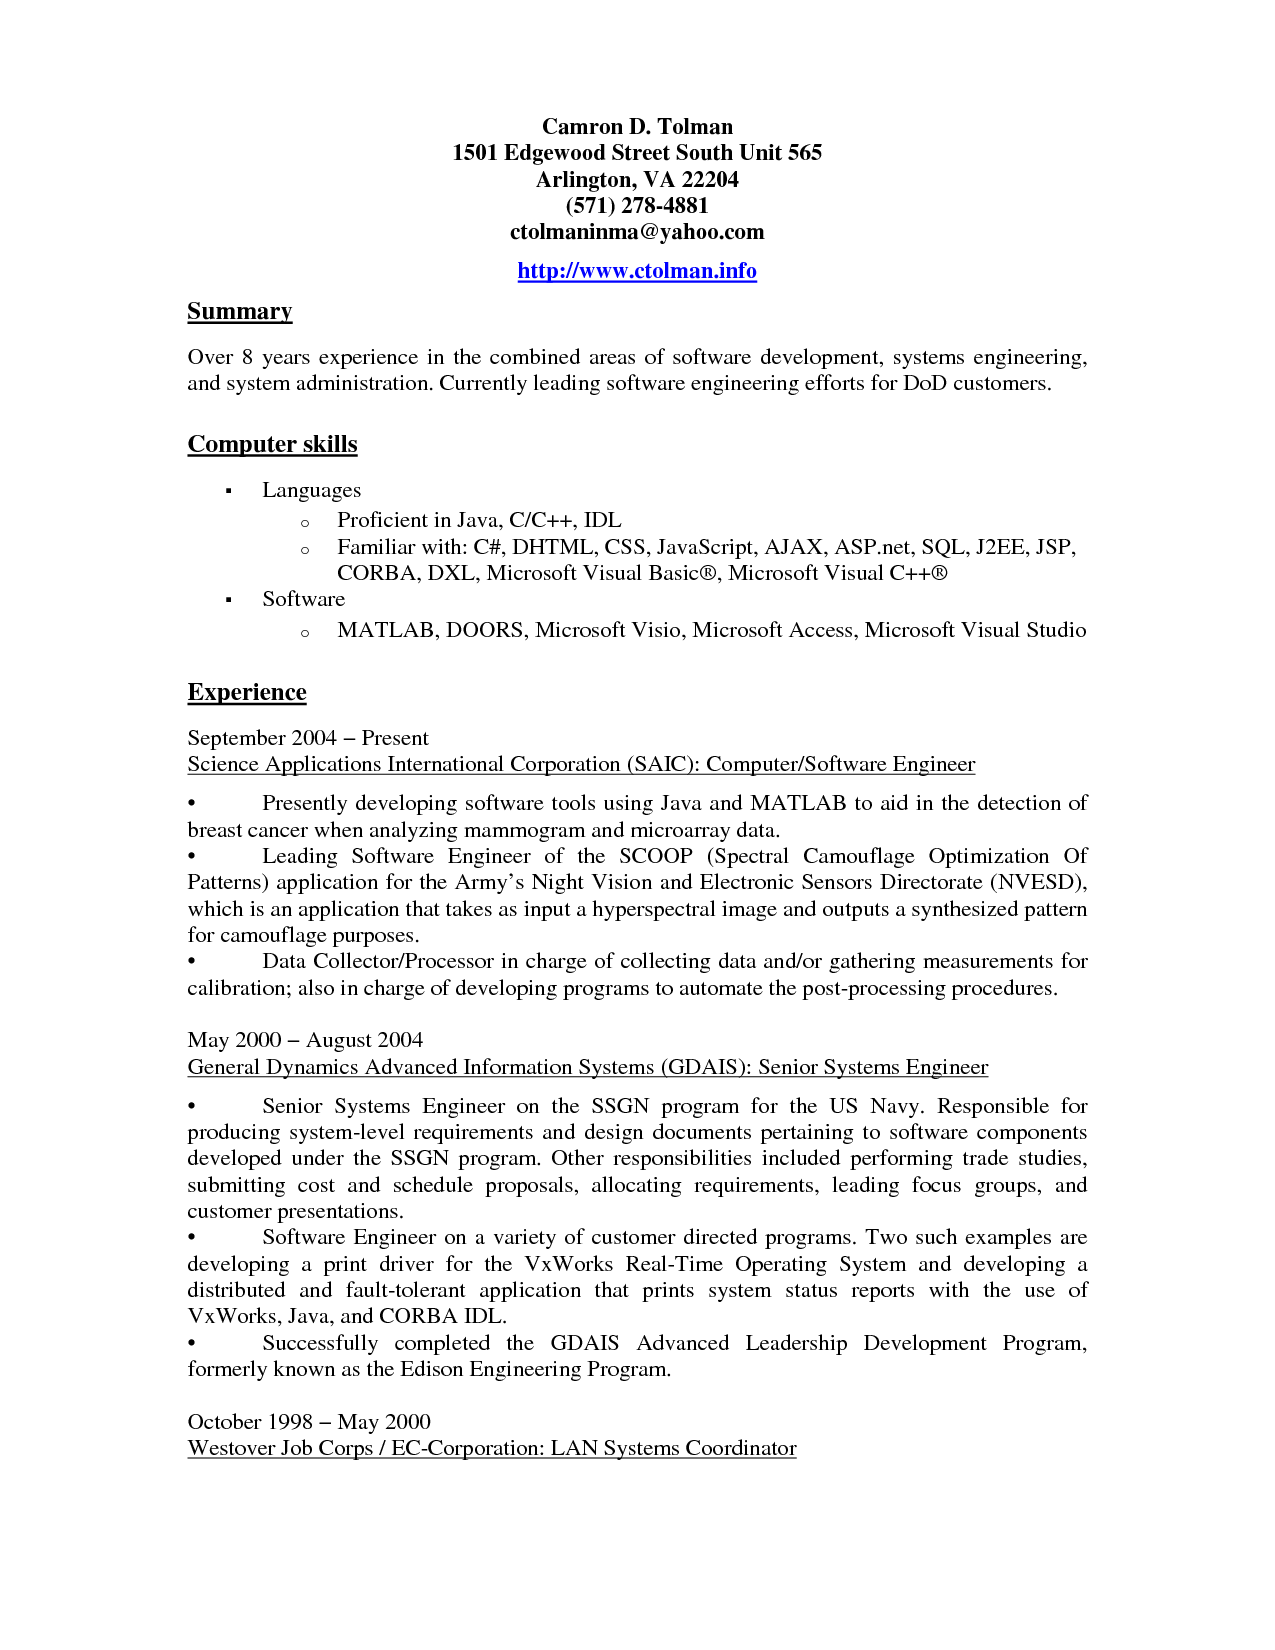 Current Resume Templates Computer Proficiency Resume Sample  Httpwwwresumecareer